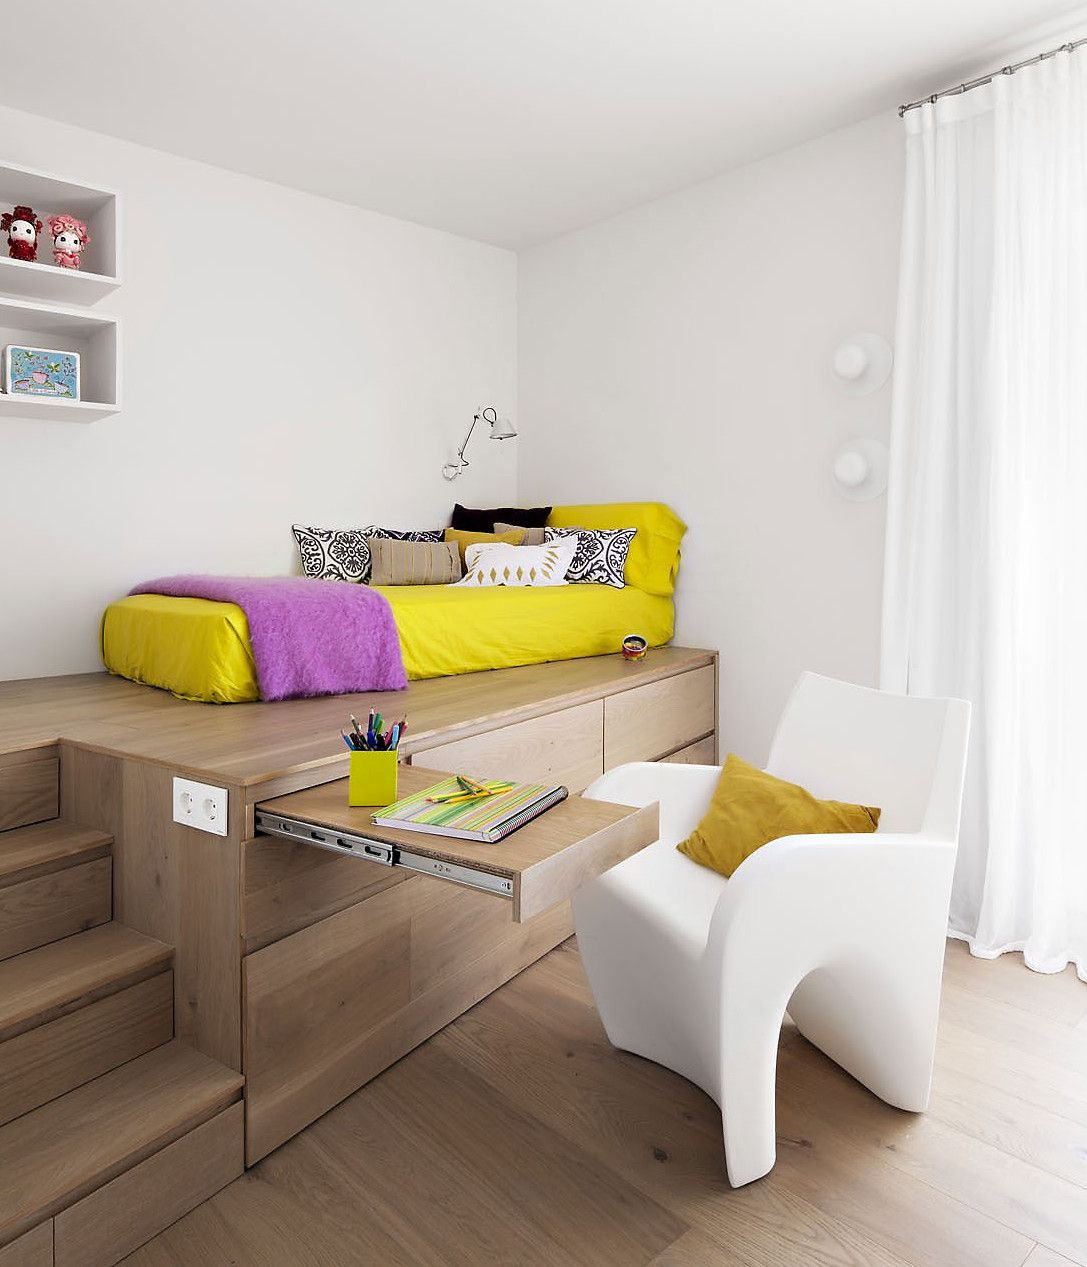 Coole Zimmer Ideen für Jugendliche | Room, Kids rooms and Tiny houses